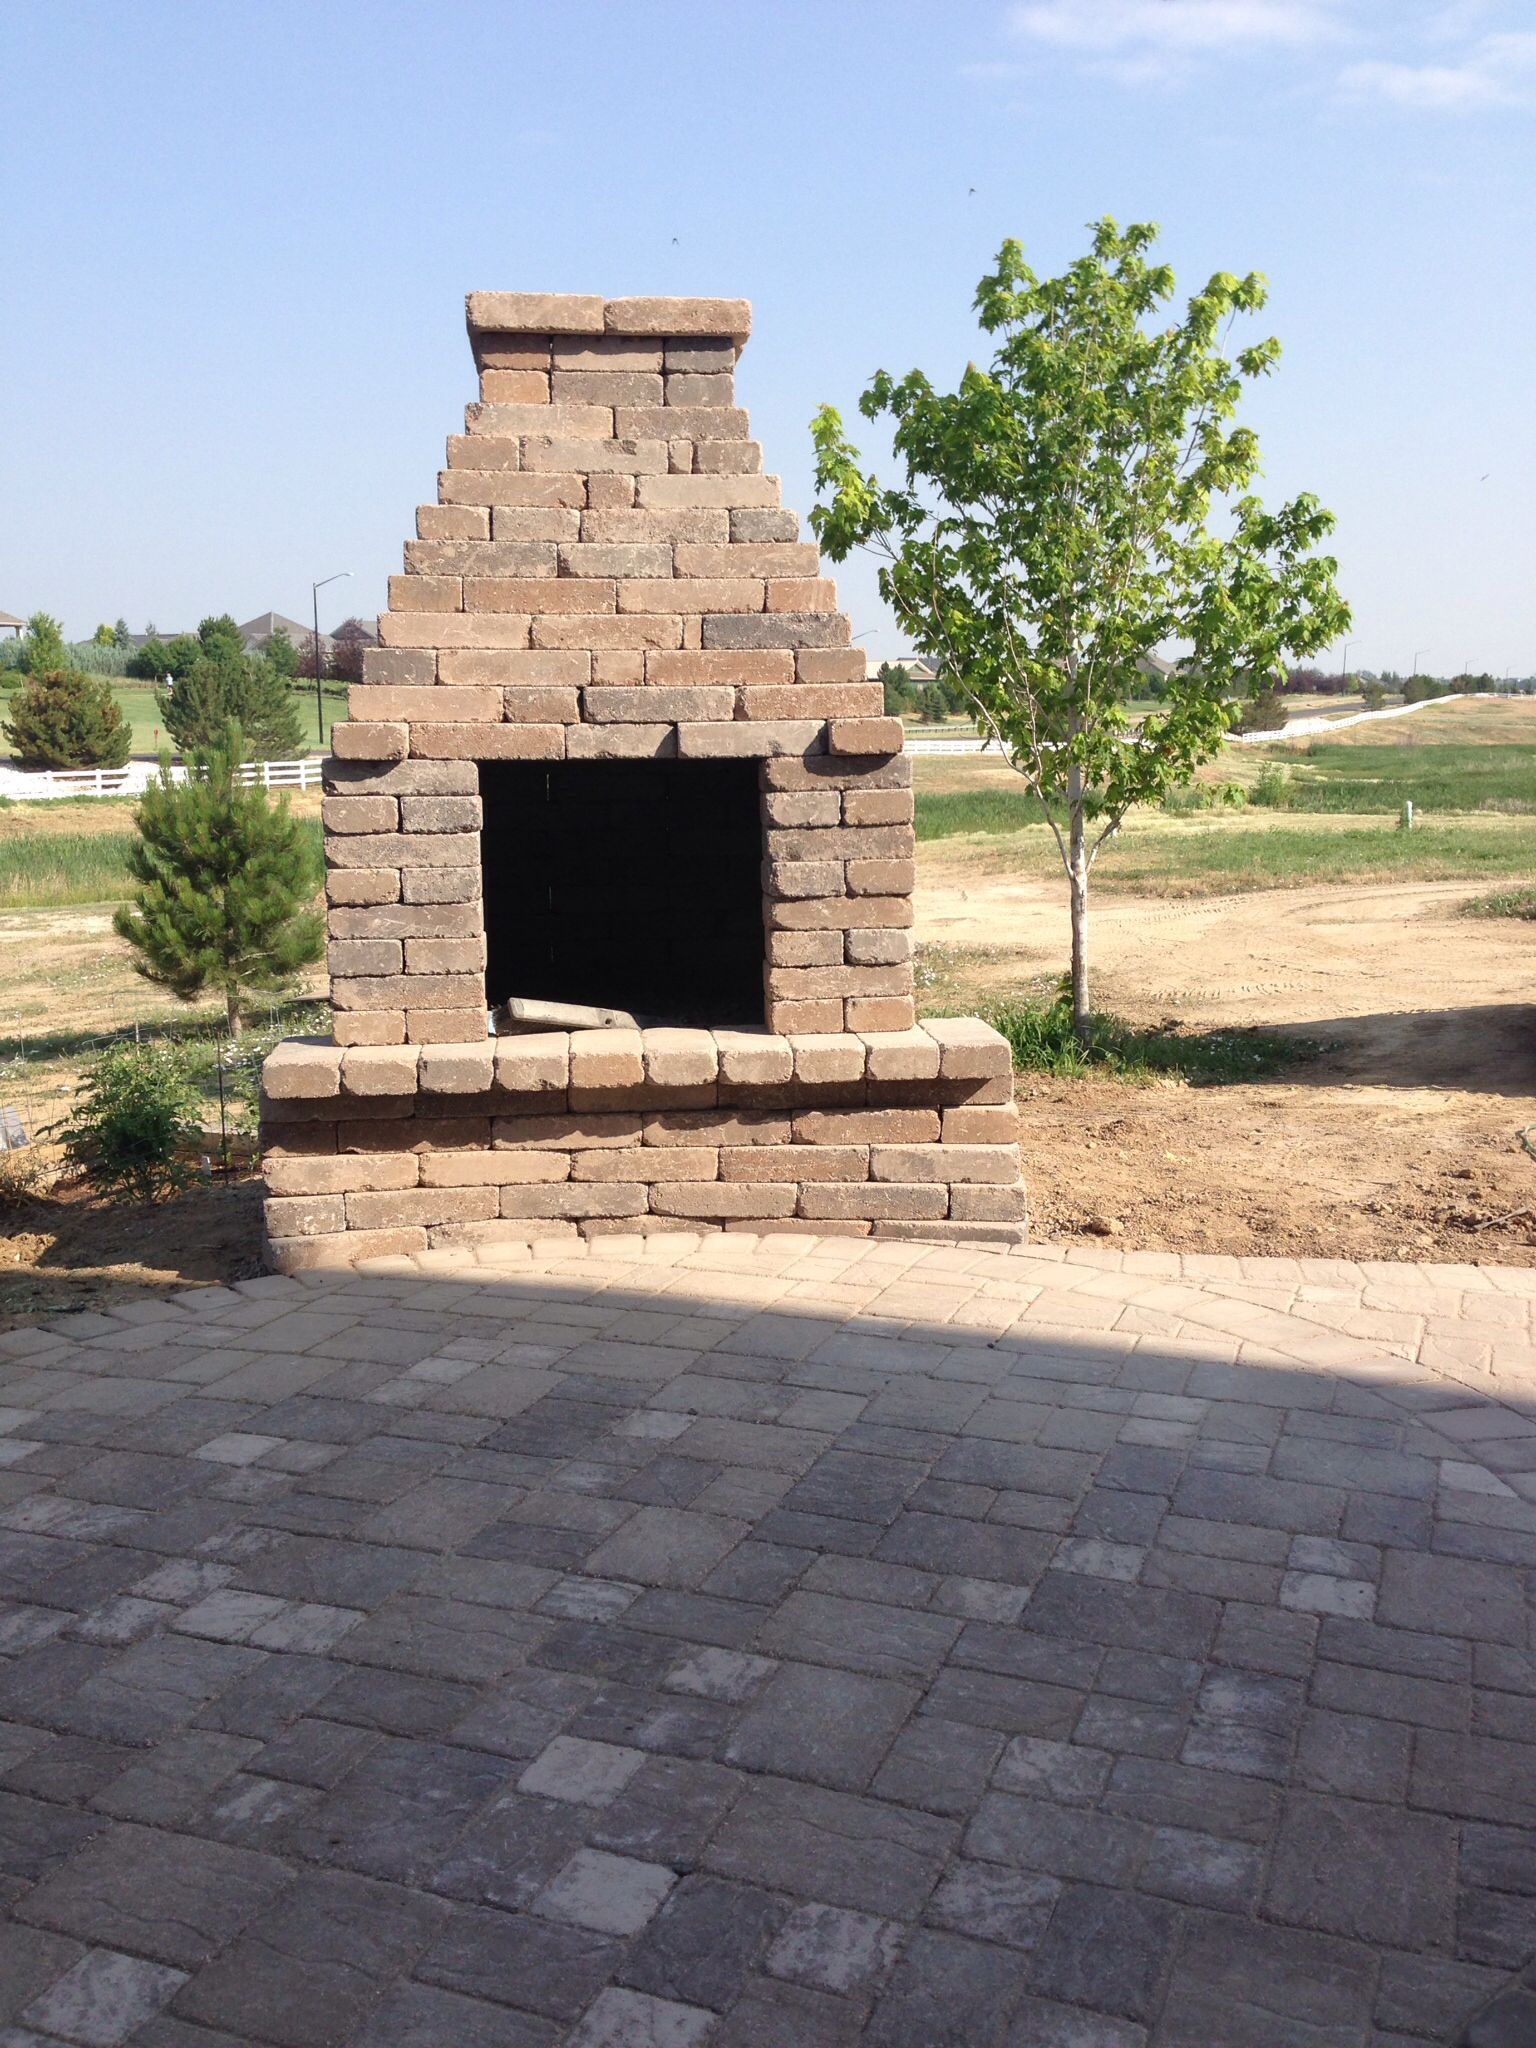 80d80d0e9df1951e97e138eef122a1dc Top Result 53 Inspirational Outside Stone Fireplace